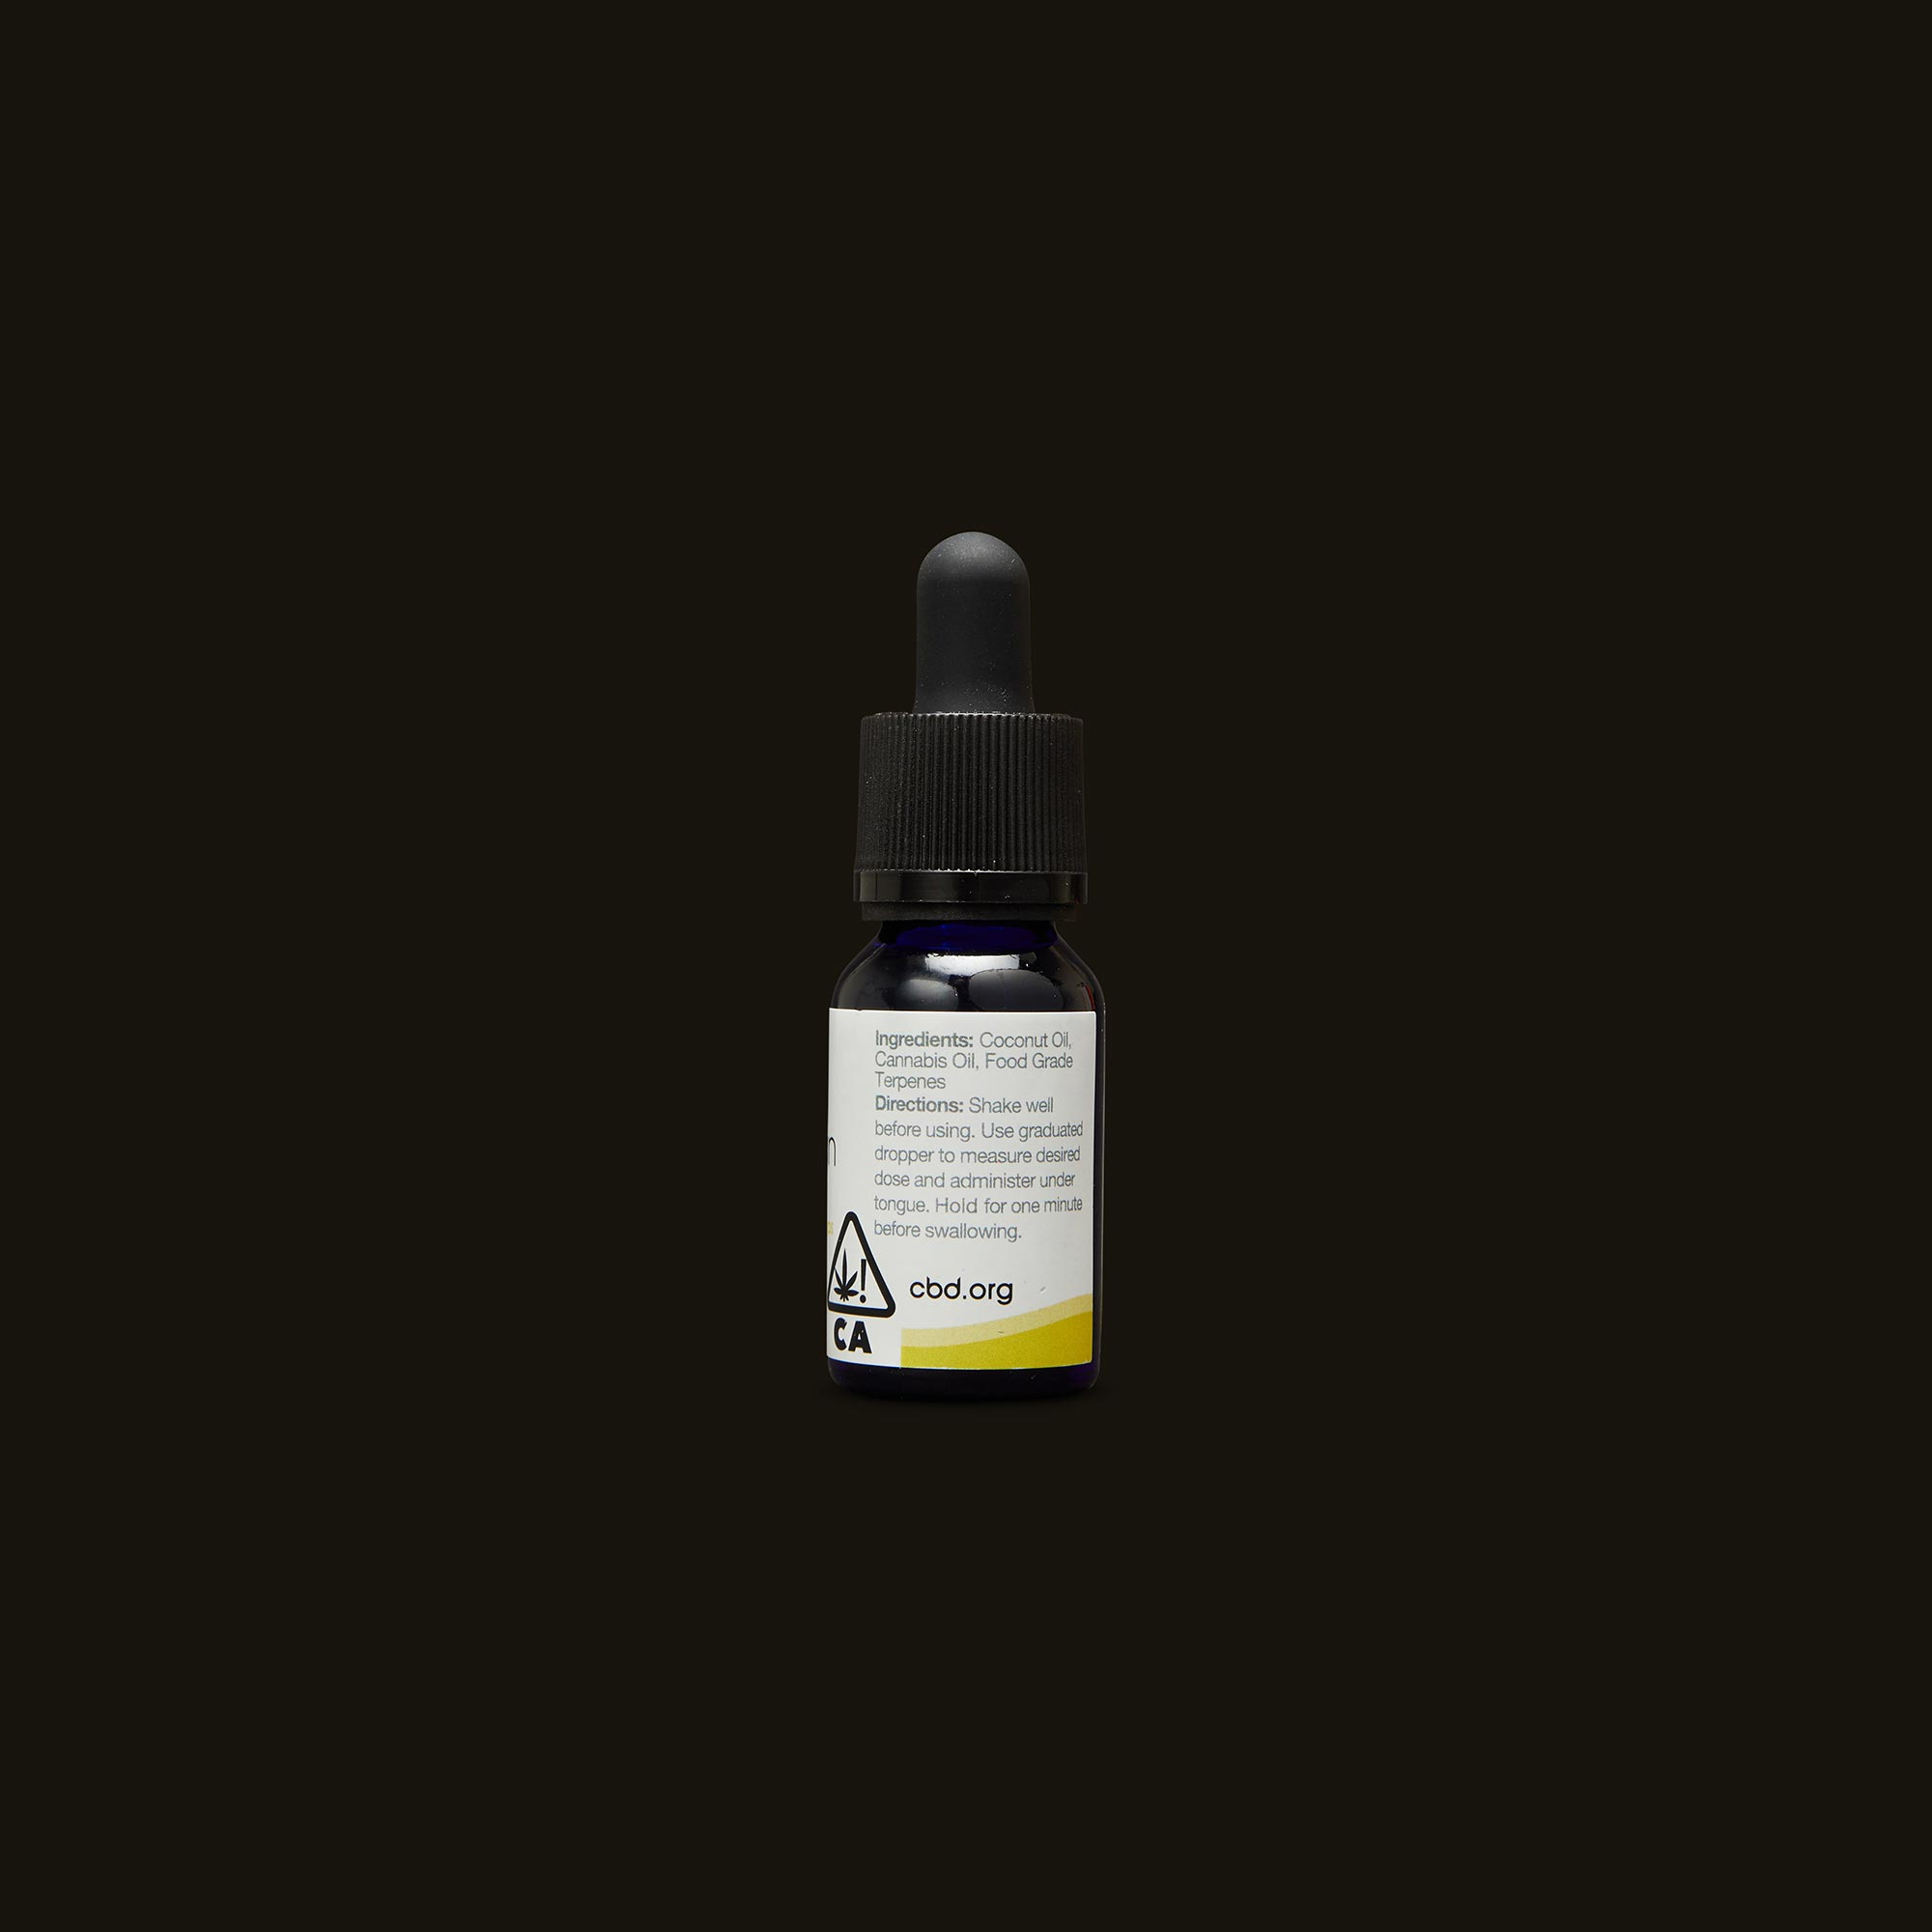 Care By Design 4:1 Sublingual Drops Ingredients